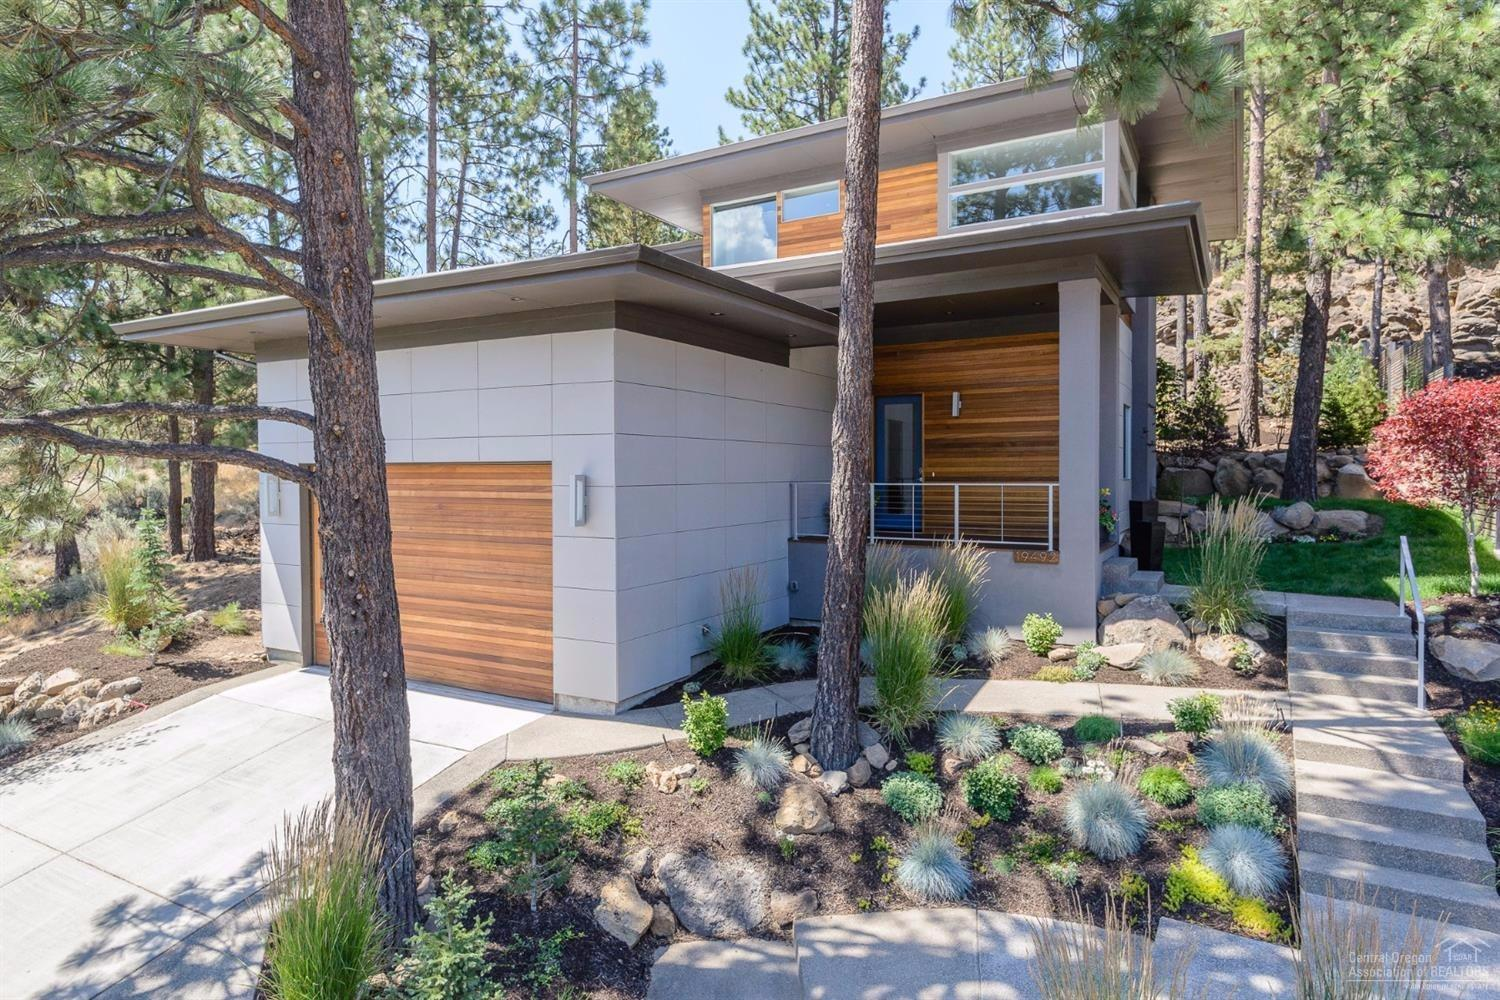 3 bed / 2 full, 1 partial baths Home in Bend for $699,000